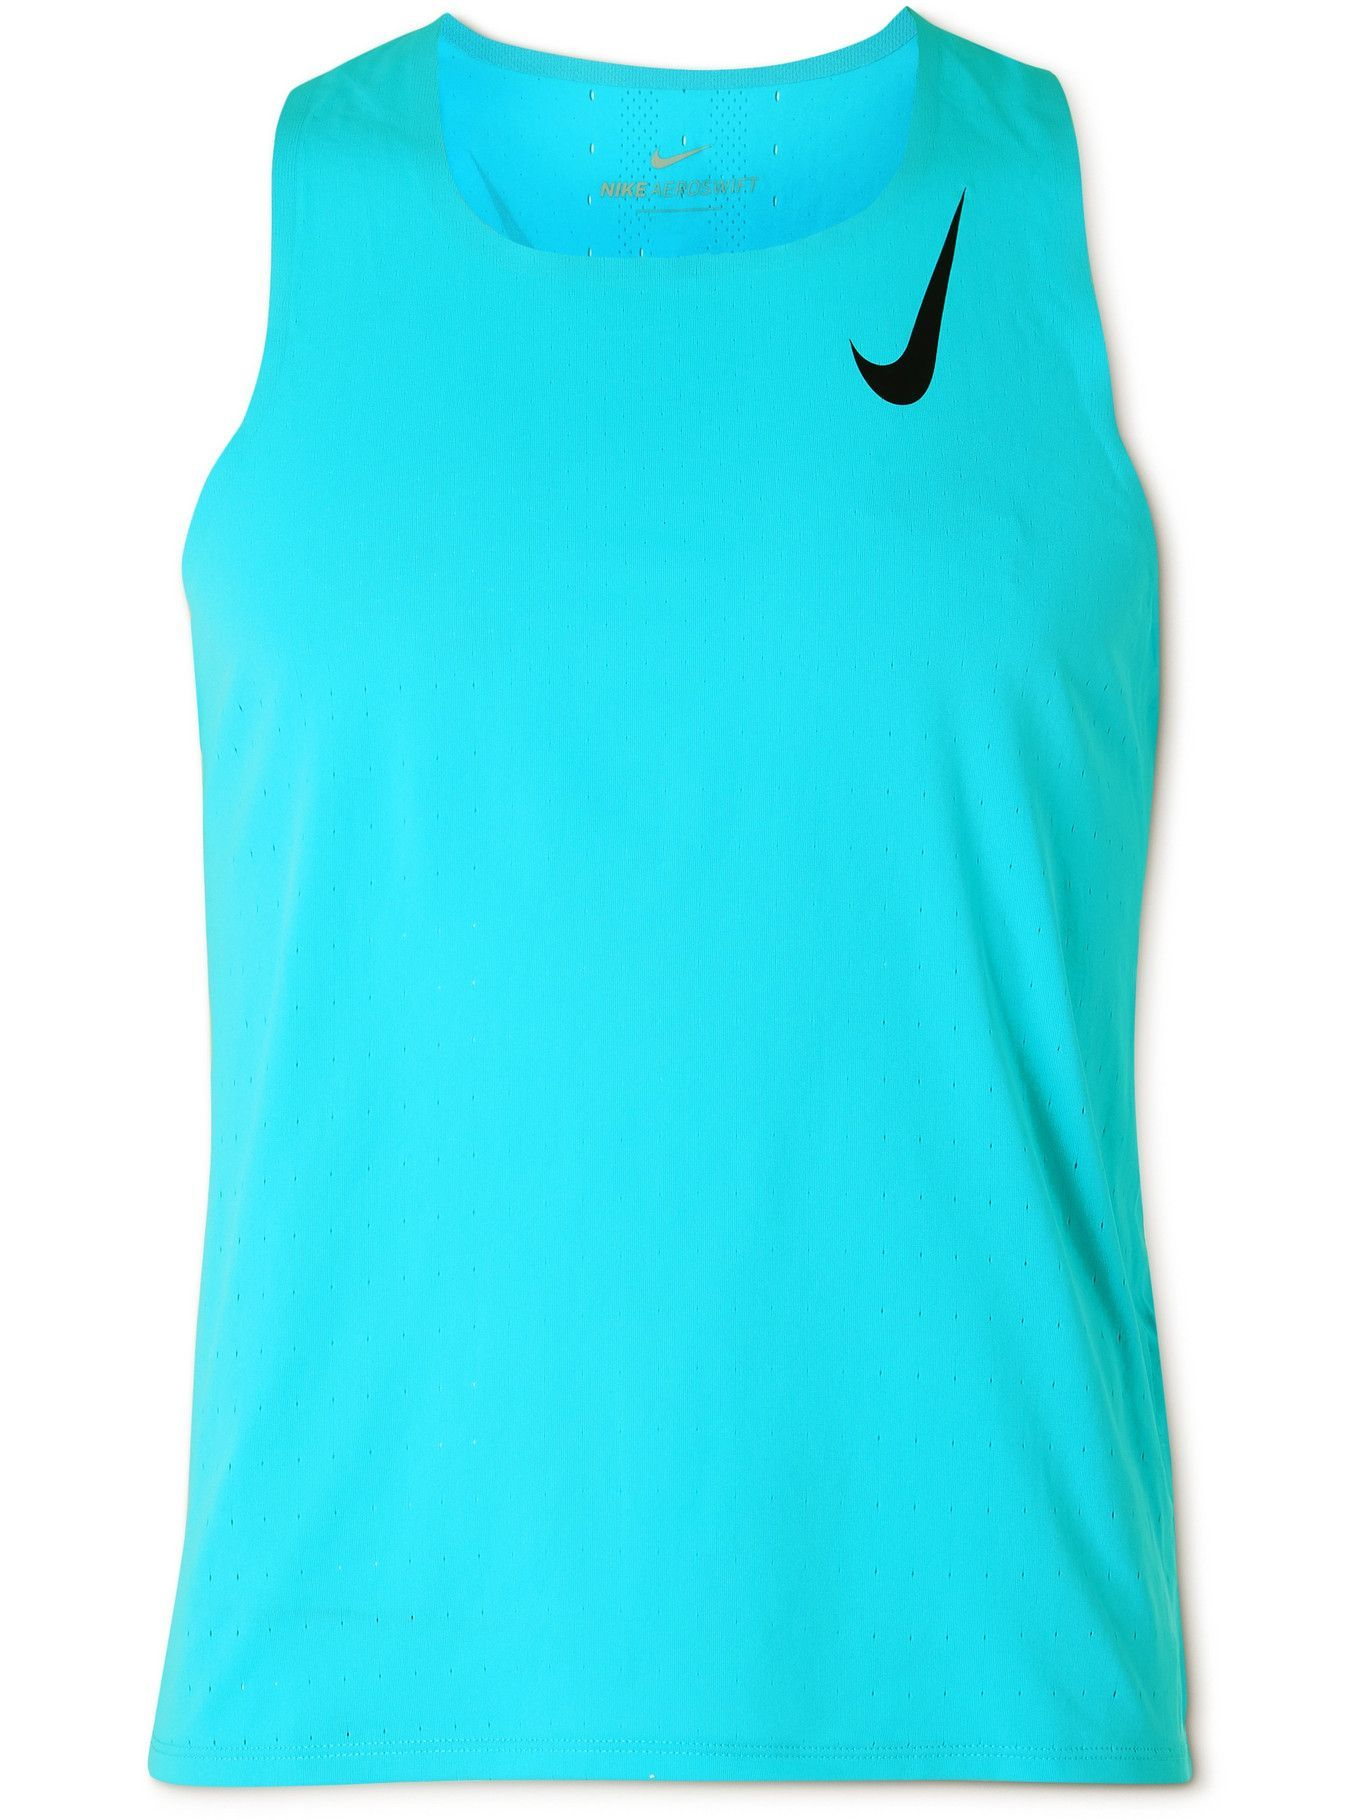 NIKE RUNNING - Logo-Print Perforated Recycled AeroSwift Tank Top - Blue